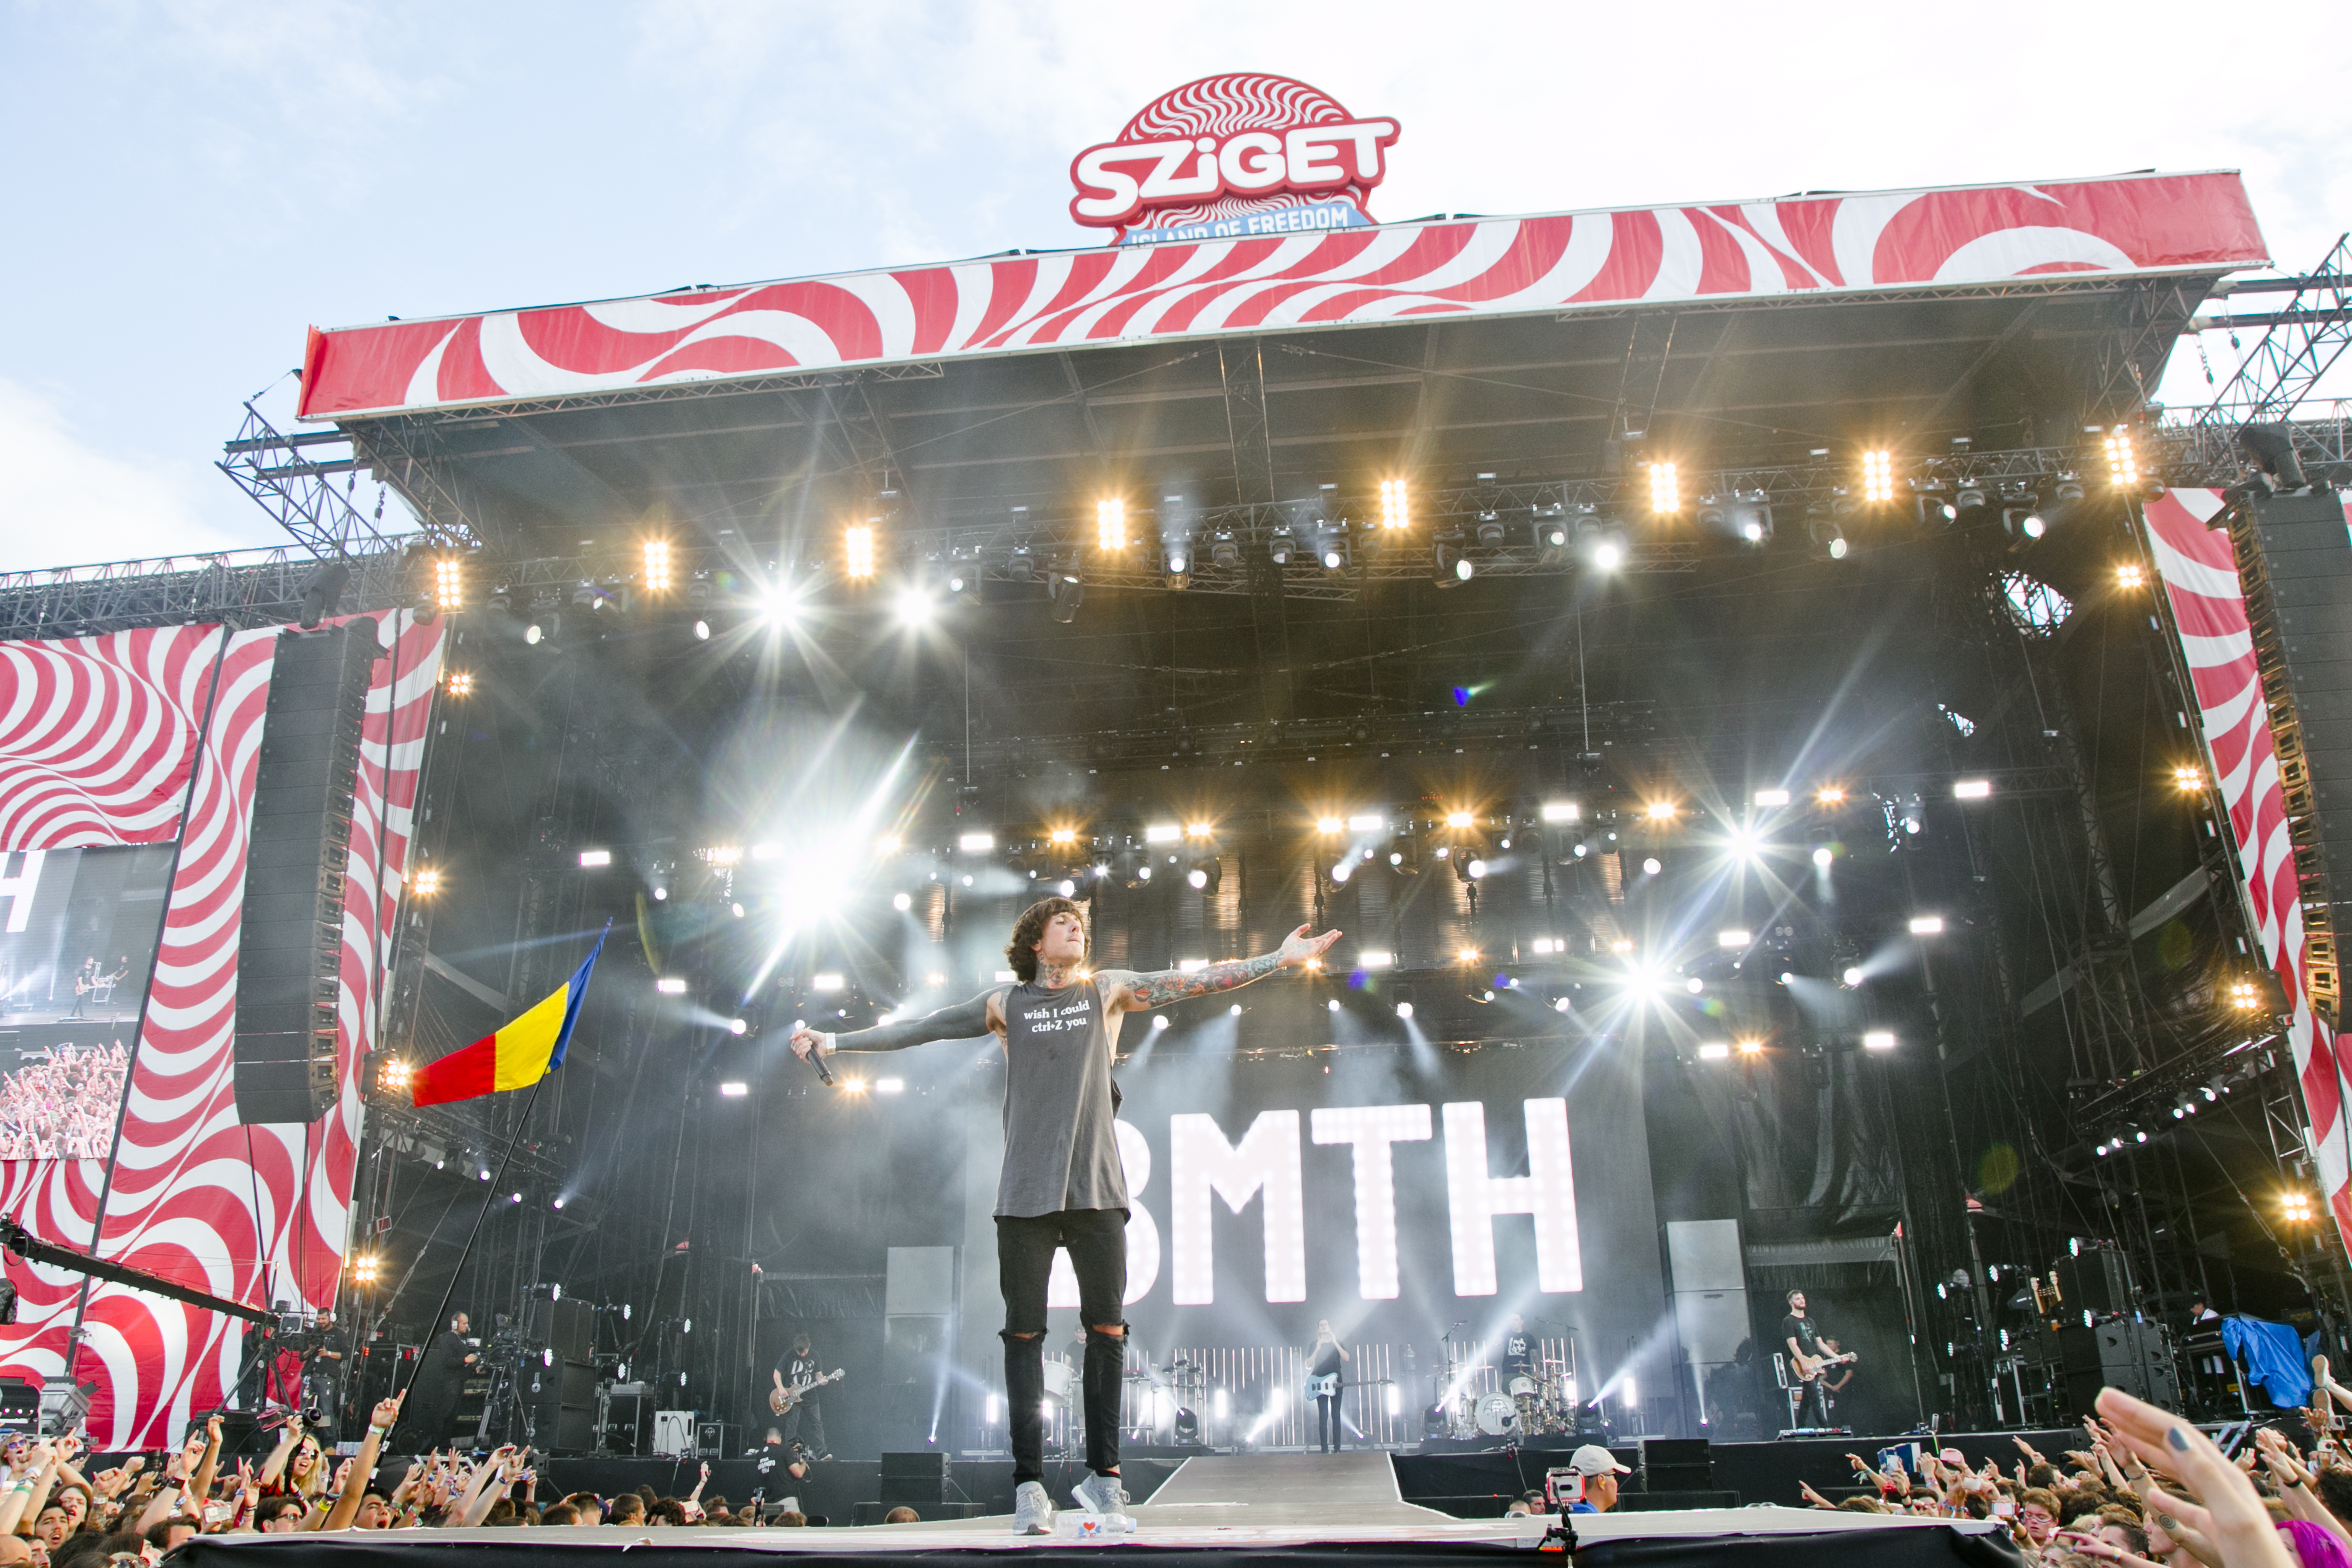 Bring Me The Horizon at Sziget Festival, Budapest, Hungary - 13 August 2016